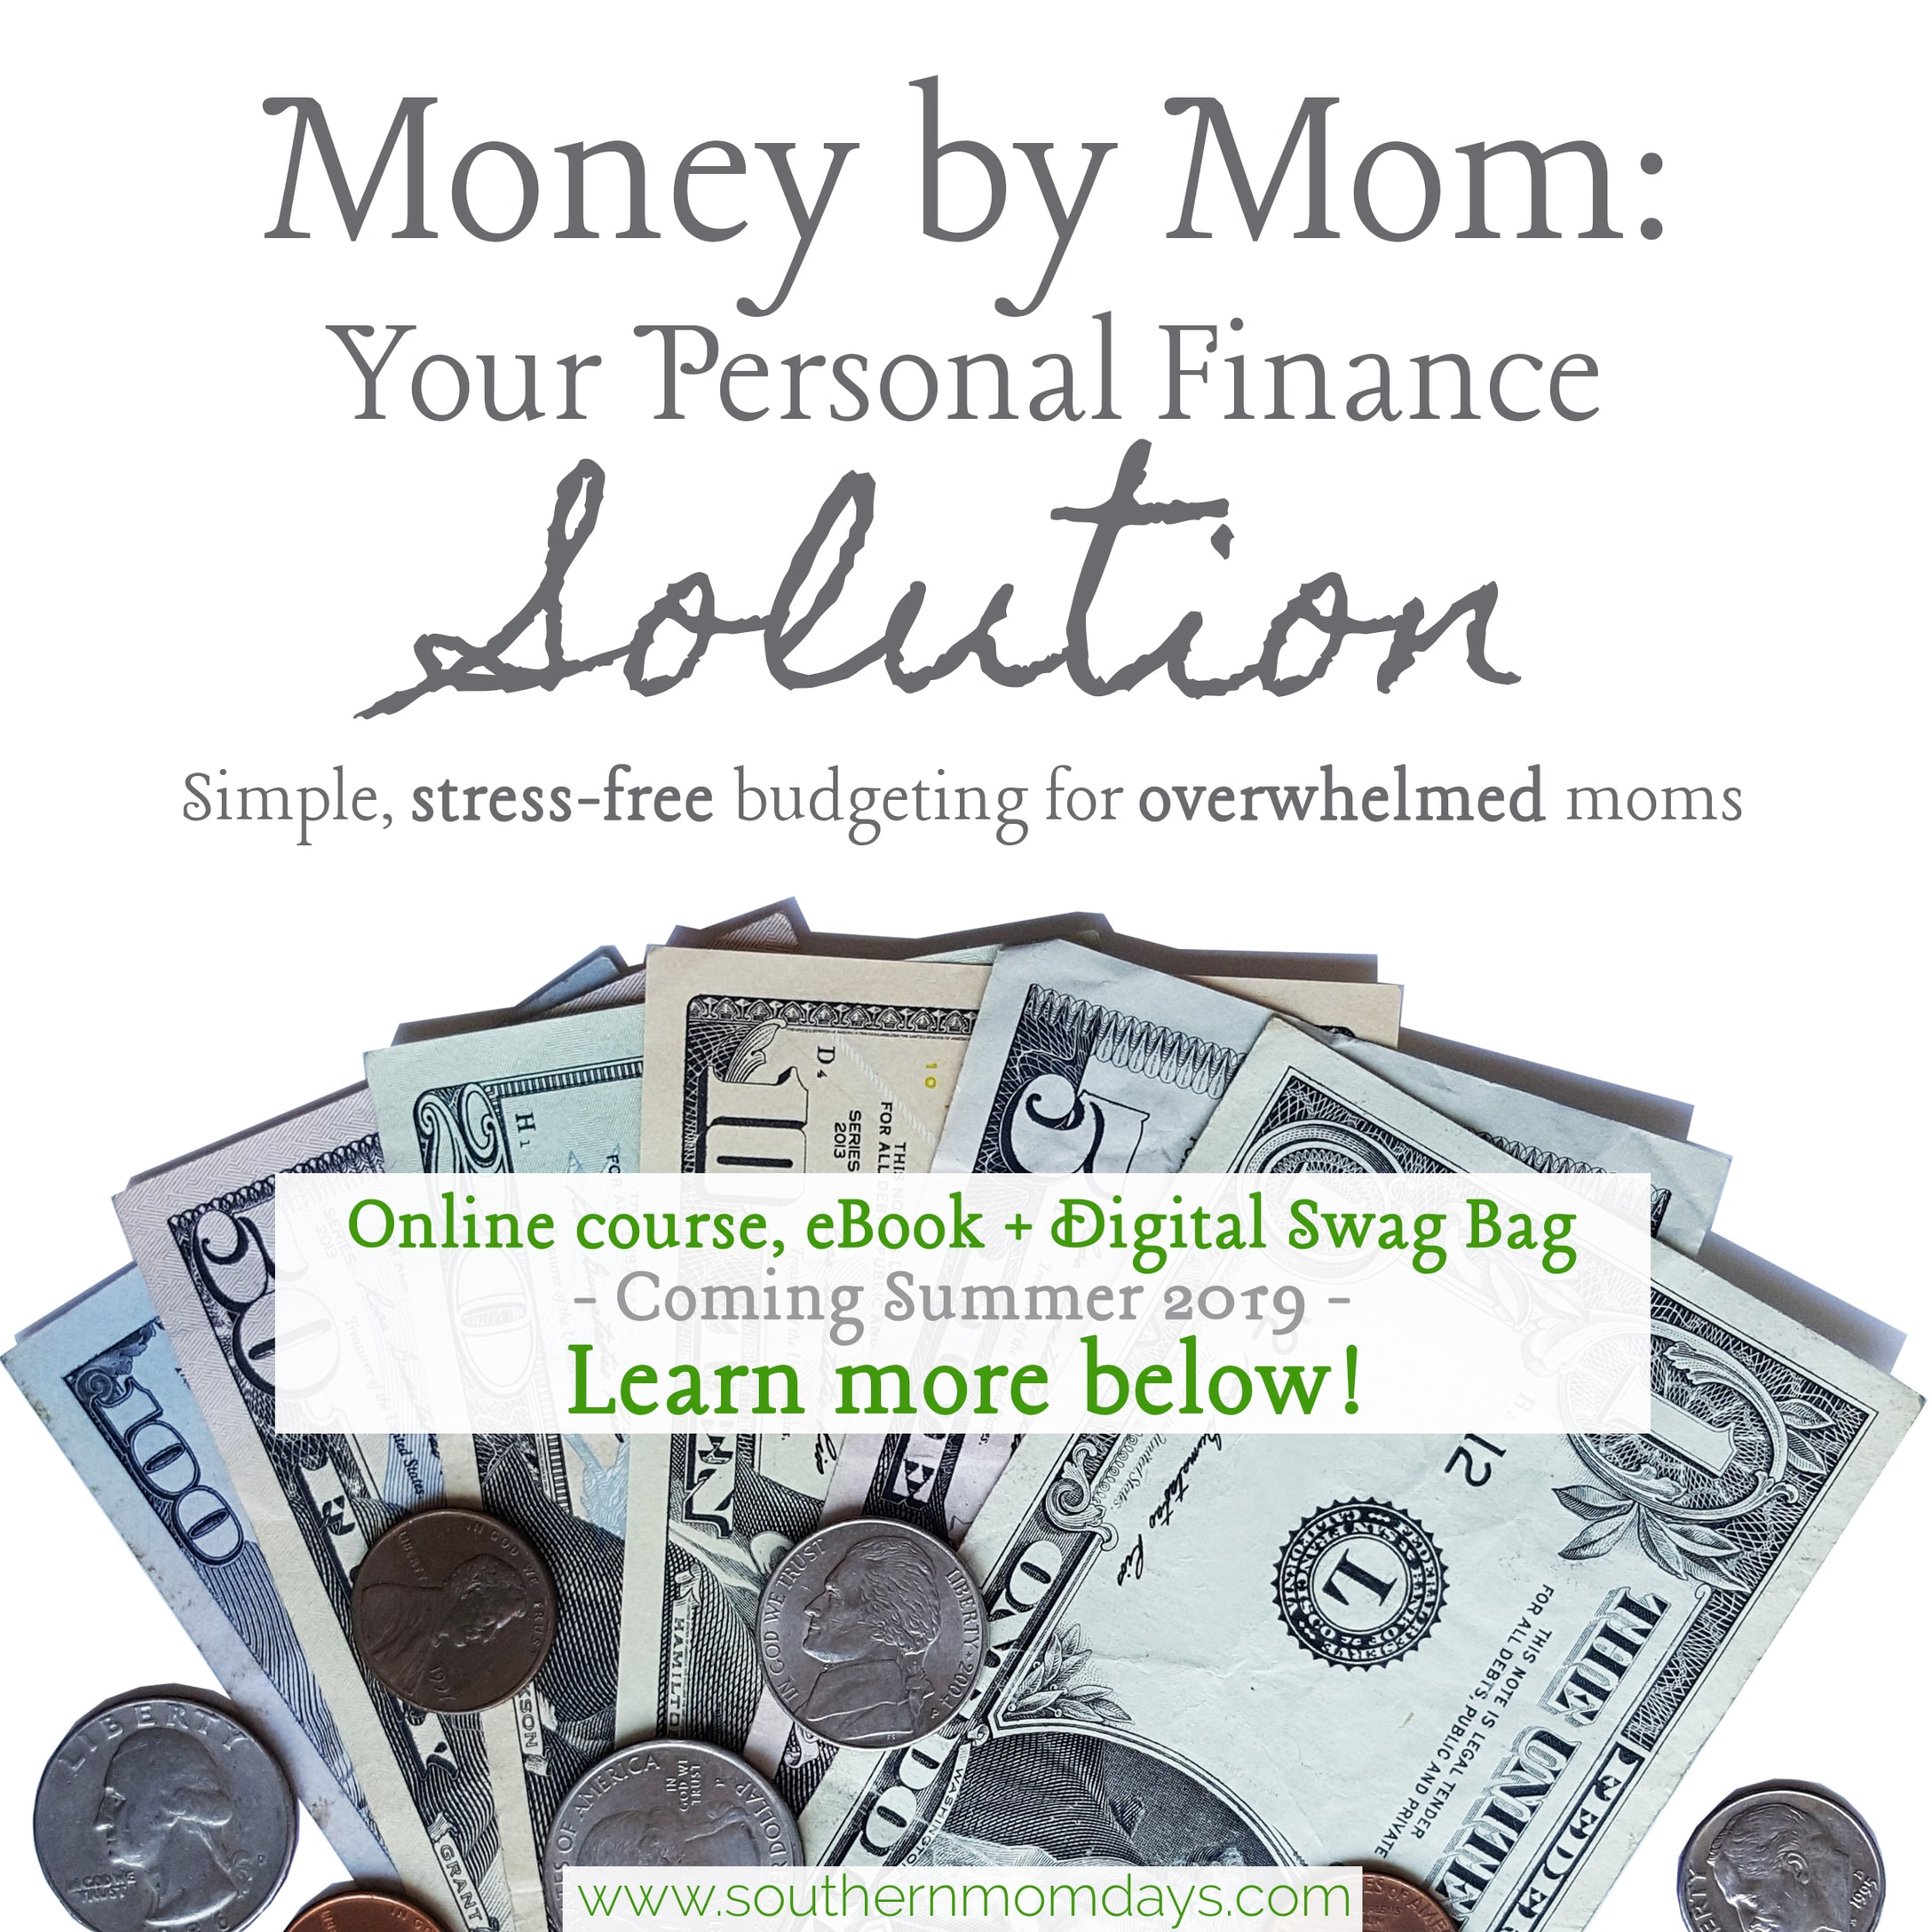 Money by Mom: Your Personal Finance Solution online course - simple, stress-free budgeting for overwhelmed moms, by Southern Momdays